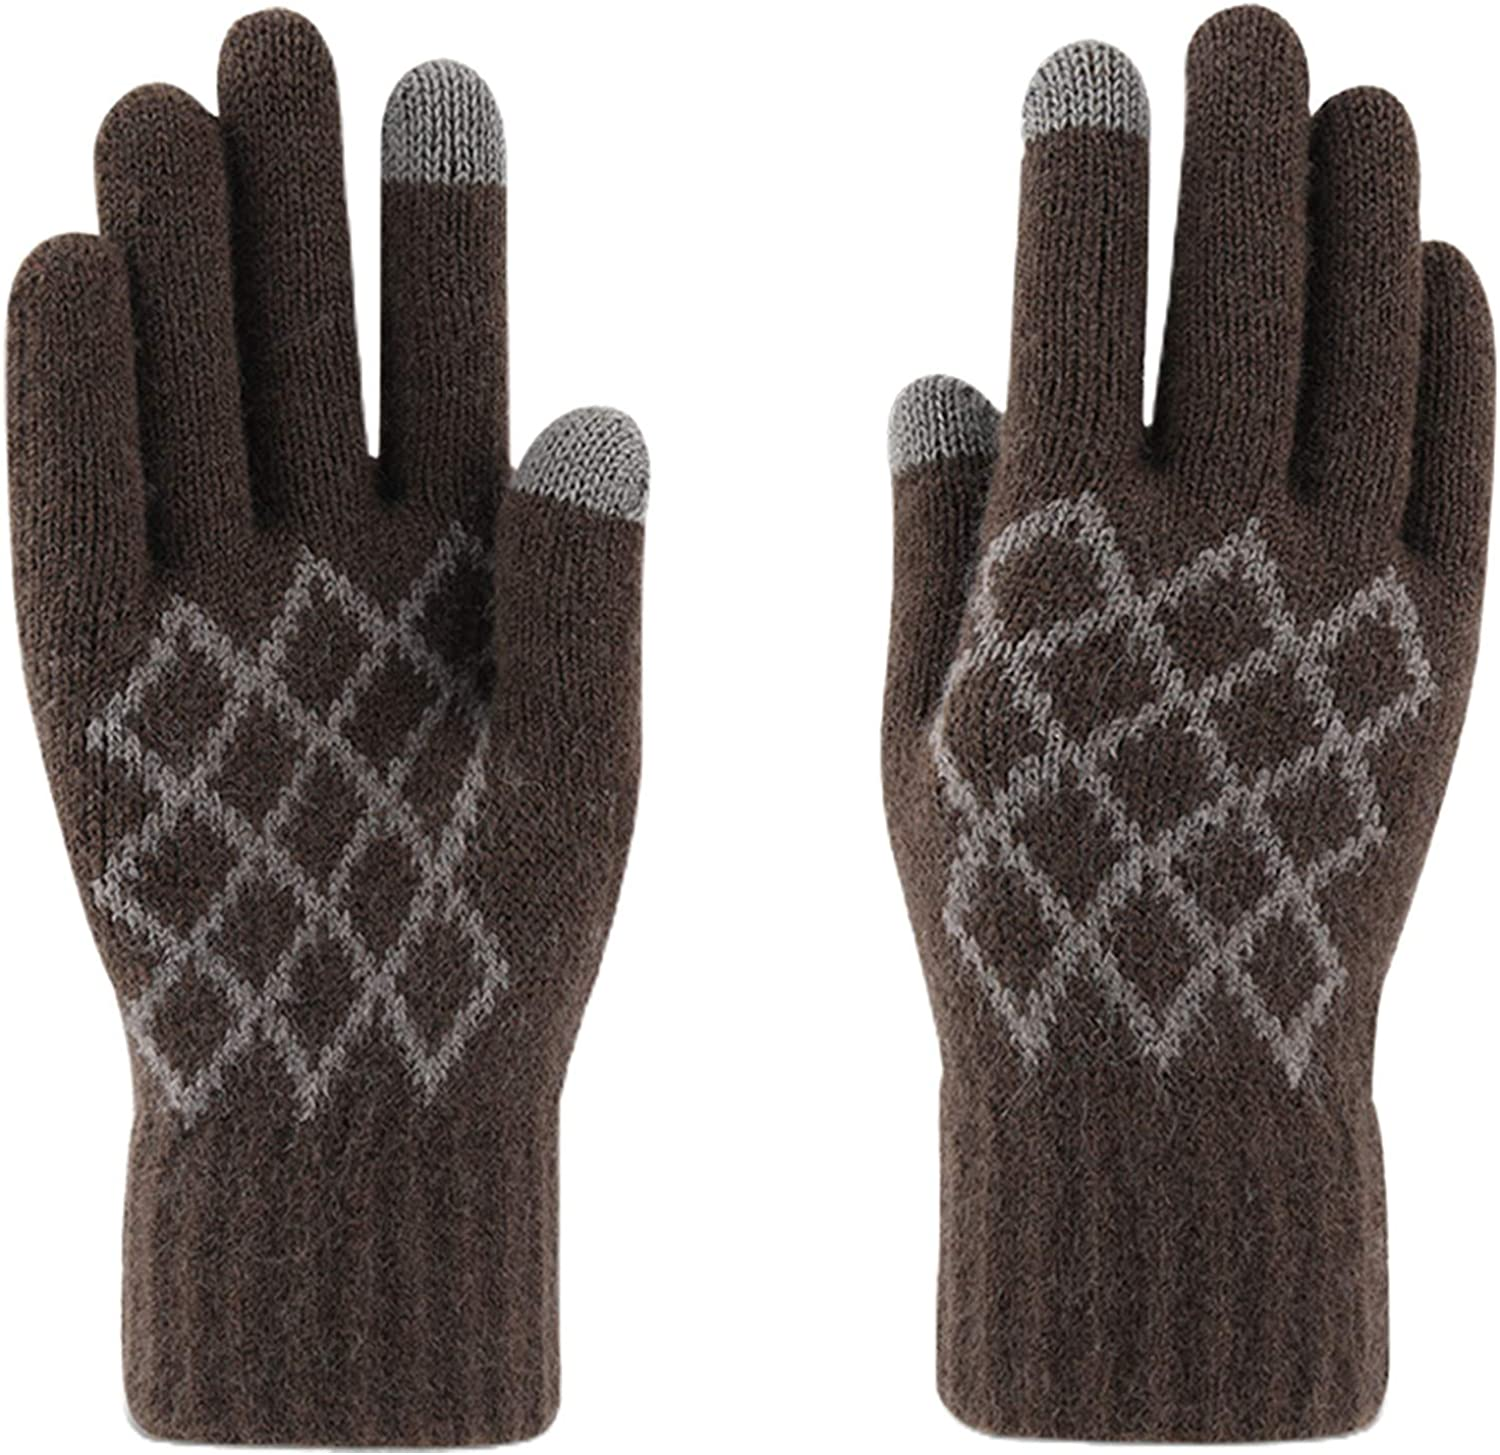 Men Winter Gloves Knitted Touchscreen Texting Glove Plaid Windproof Stretchy Warm Thermal Soft Lining Mittens